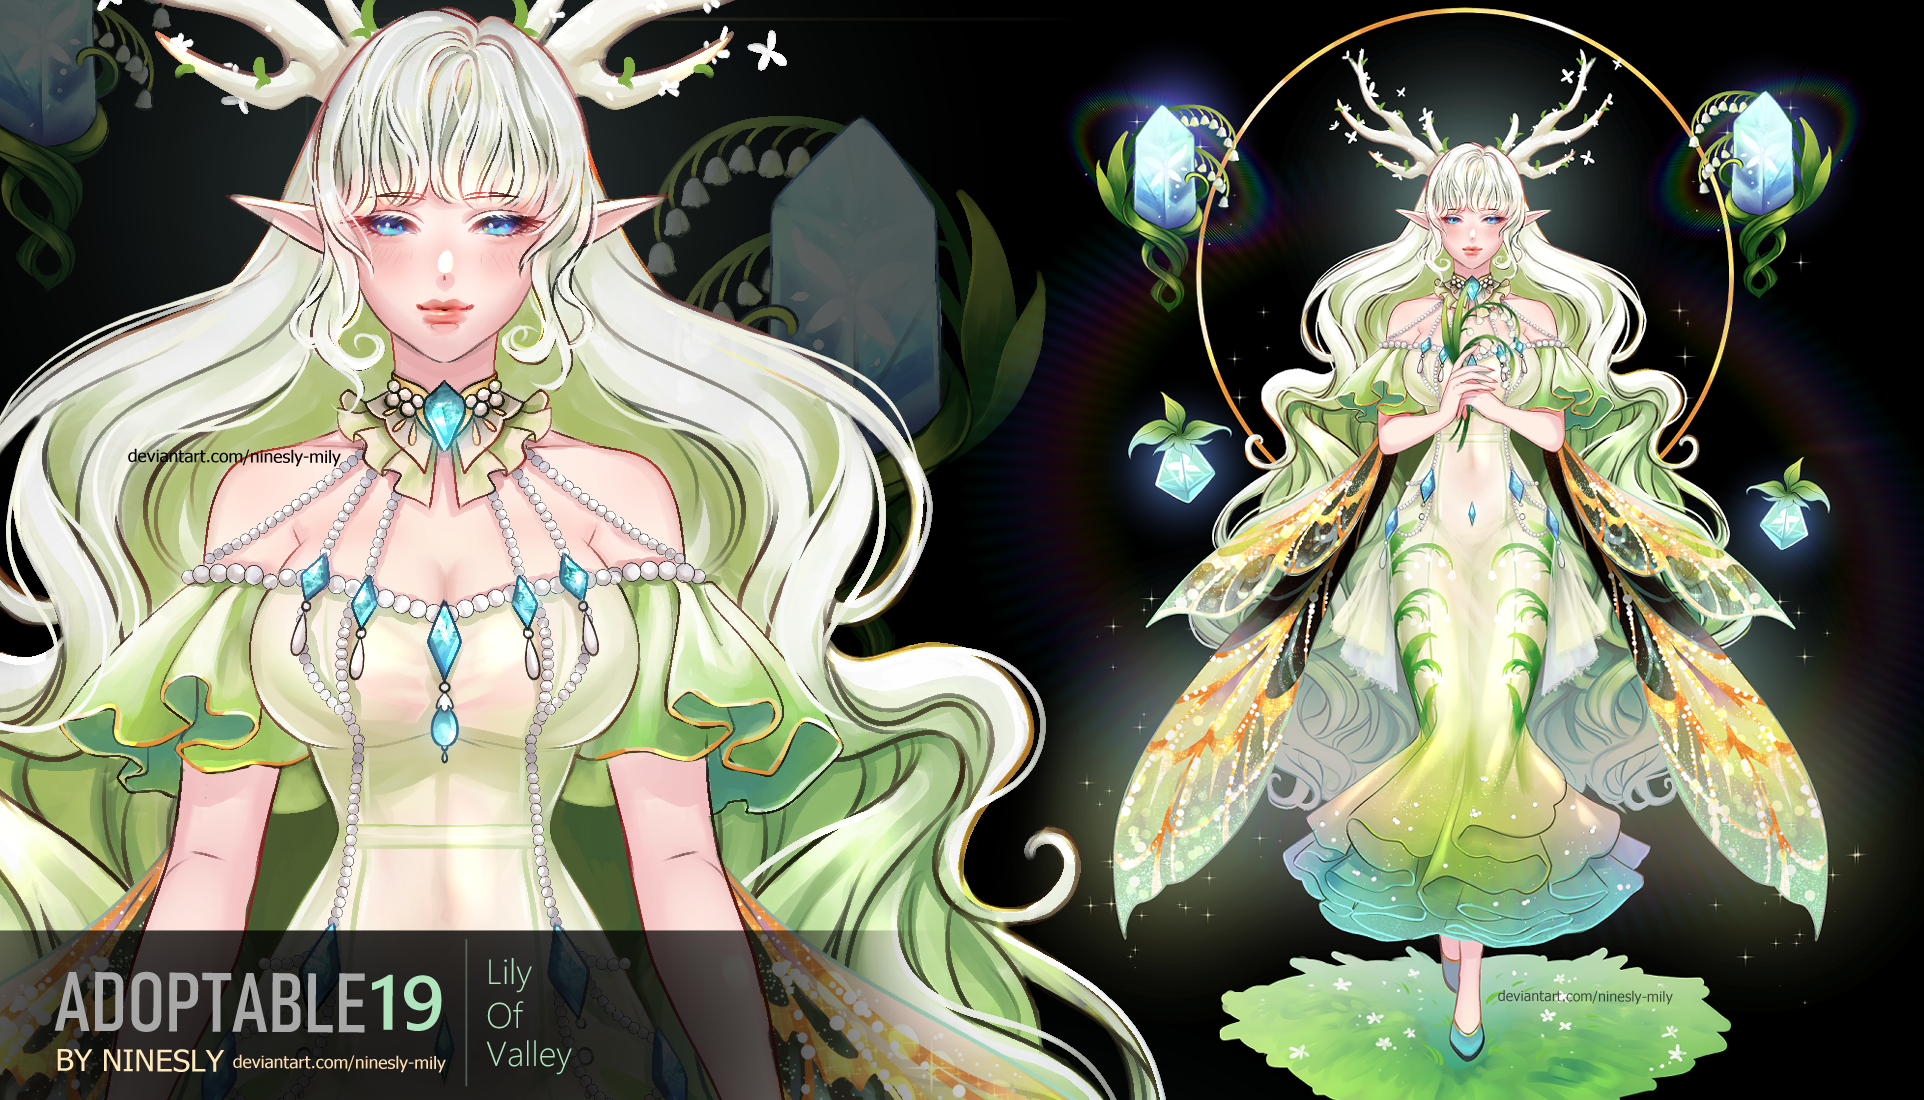 [Closed]Adoptable #19 Lily Of Valley